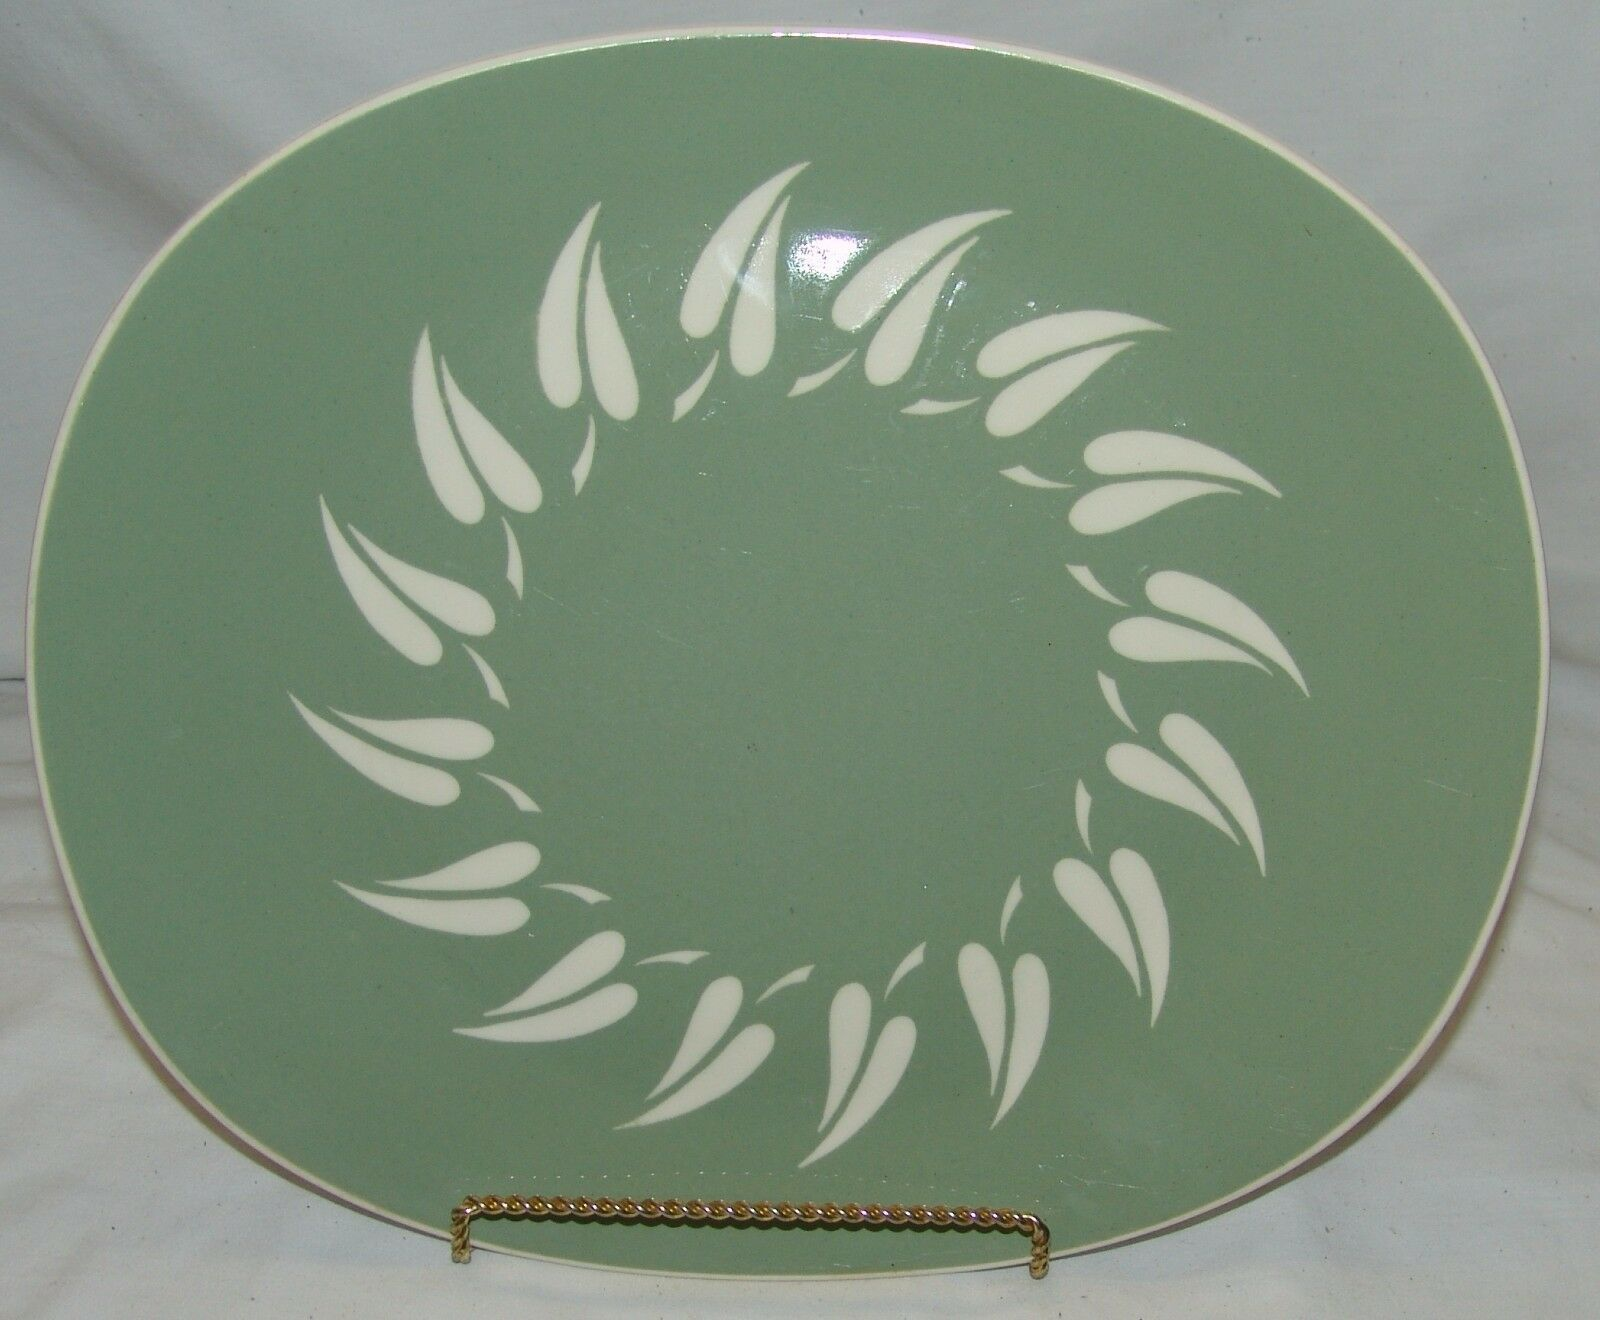 Primary image for Harkerware Oven Proof Pottery Platter Vtg Oval Sage Sunburst MCM Mid Century